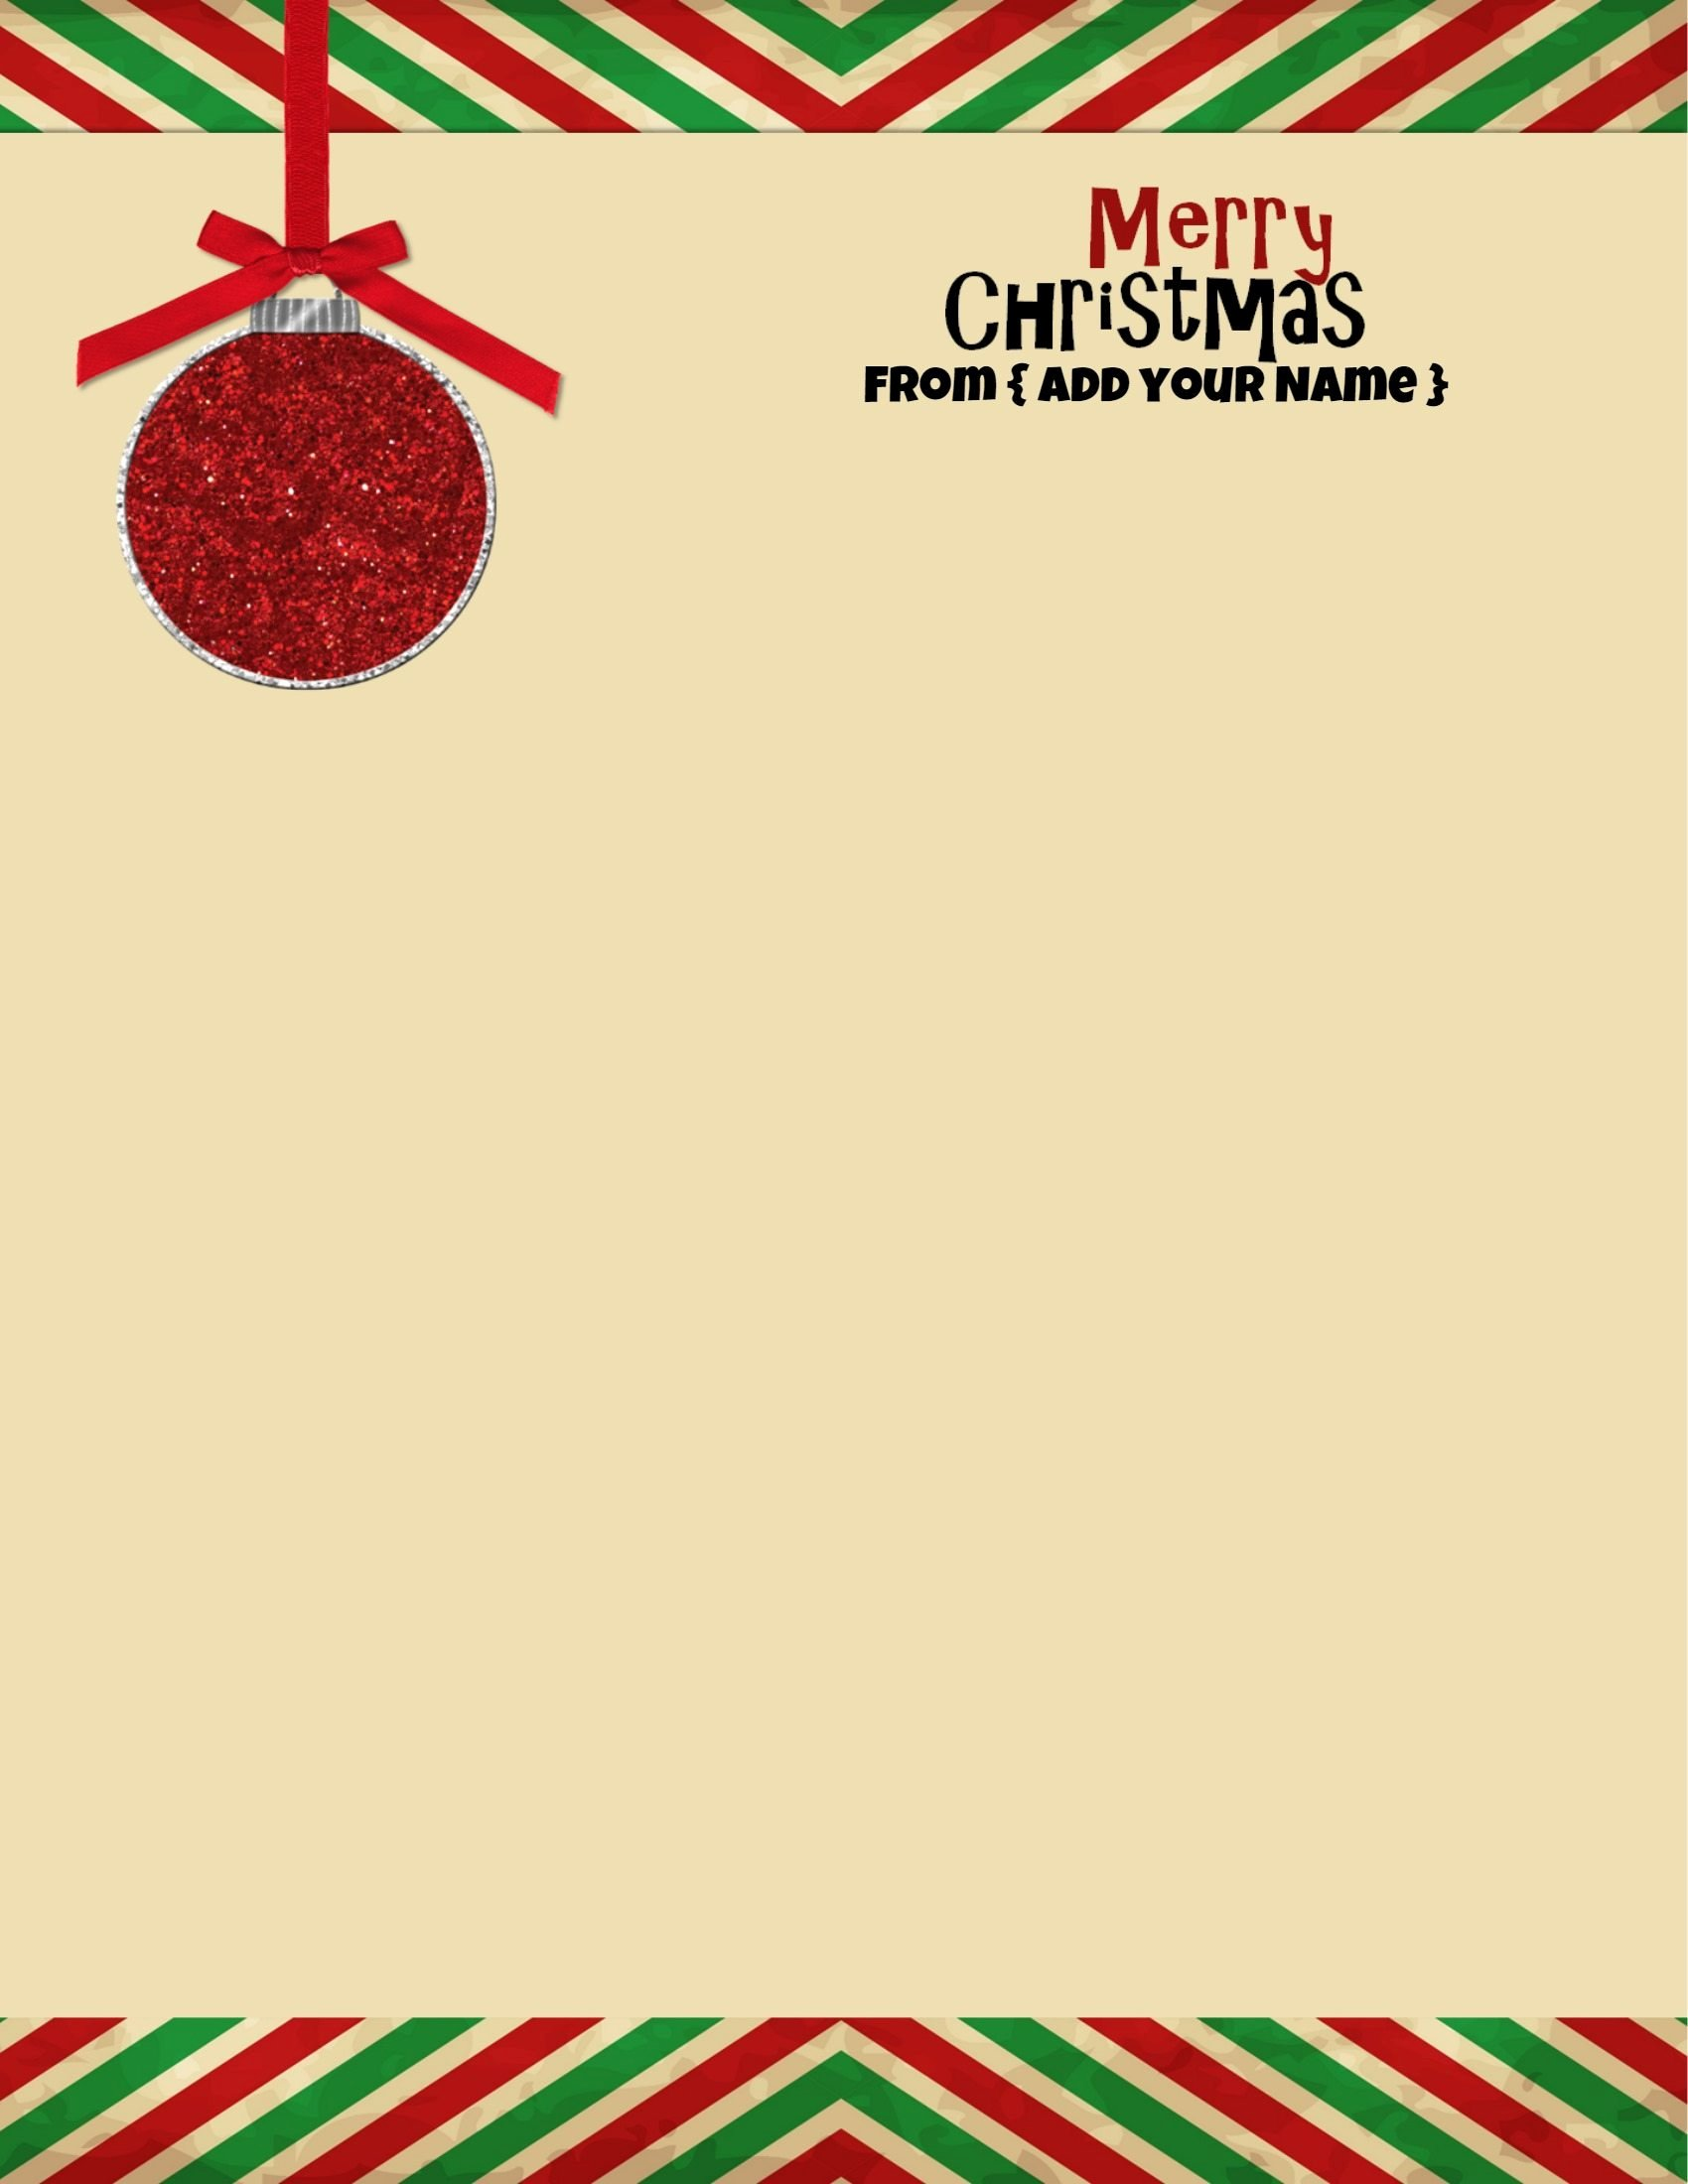 Christmas Stationery for Word New Free Personalized Christmas Stationery